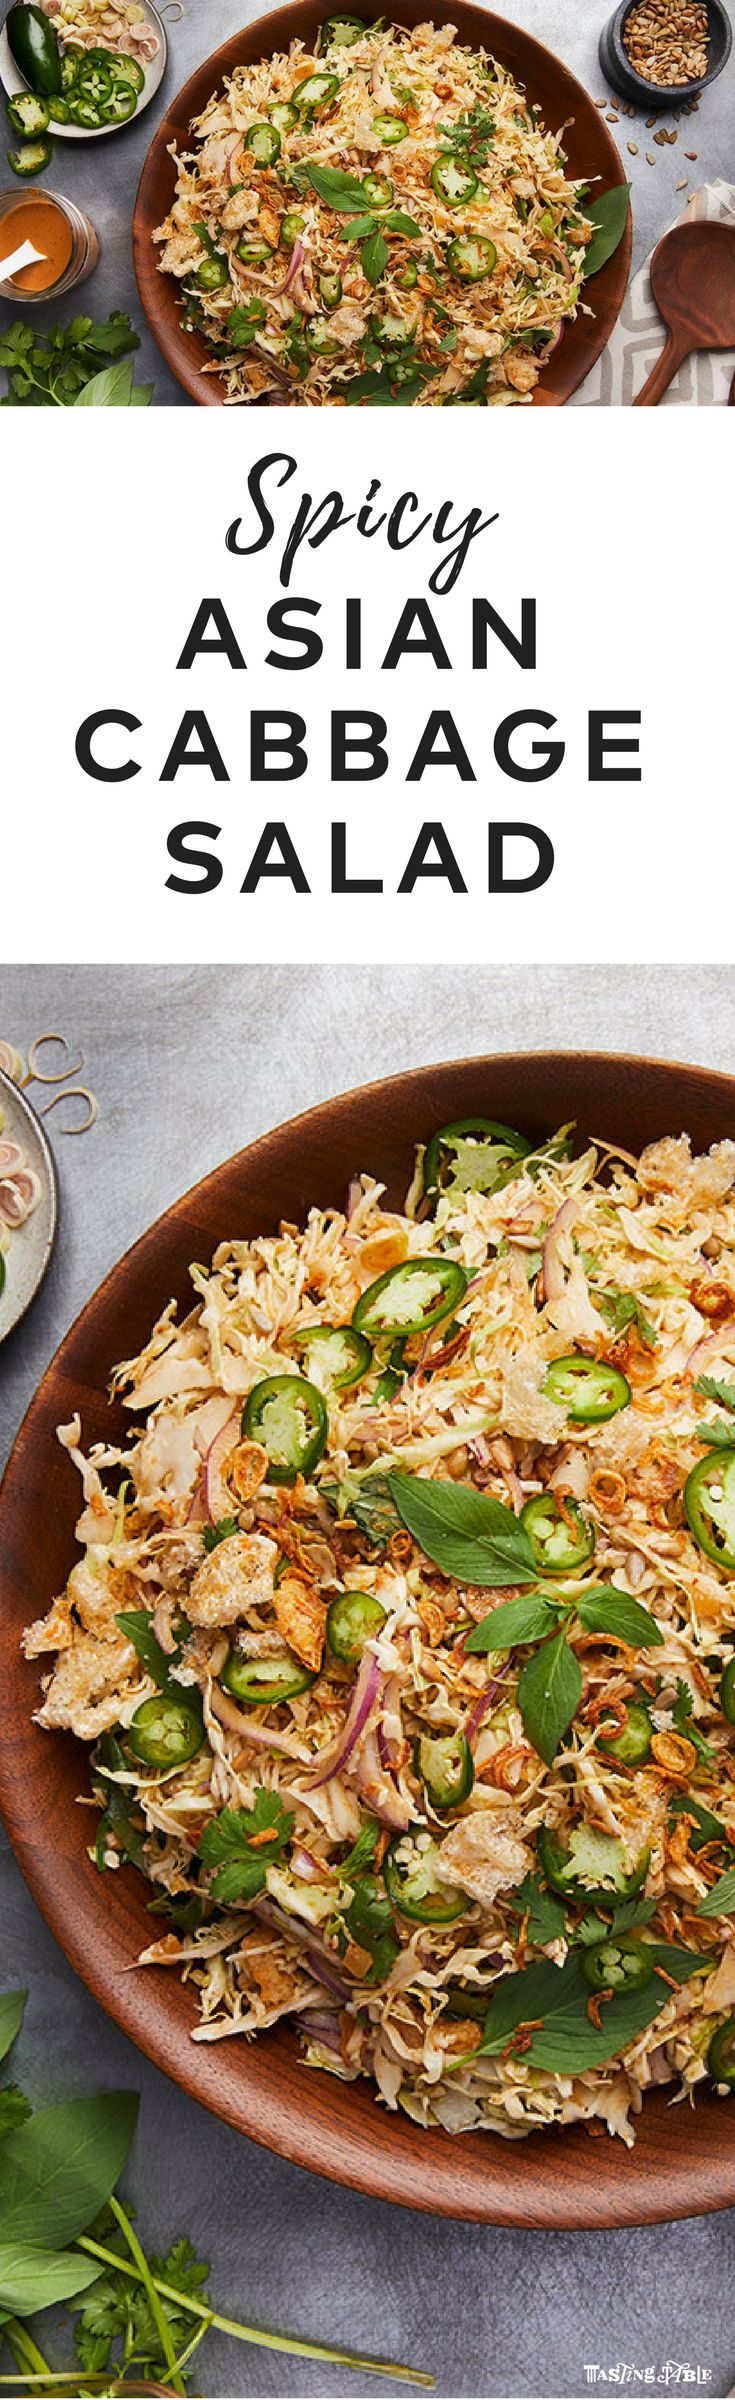 New Orleans hot spot Turkey and the Wolf serves this bright and spicy cabbage salad with sliced jalapeños and a coconut dressing laced with Sriracha.